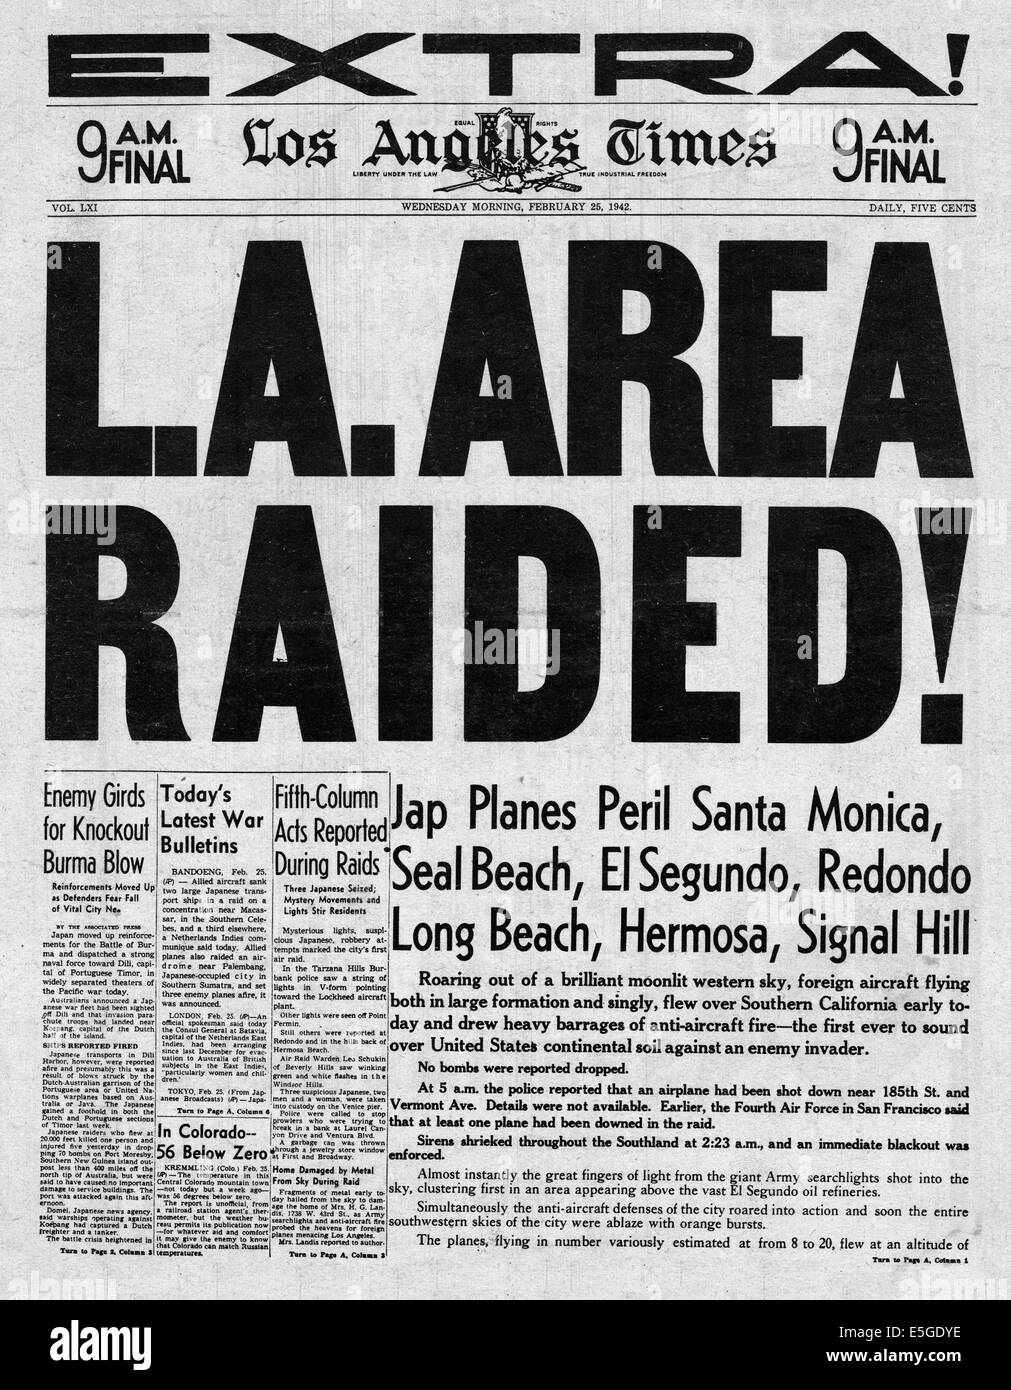 1942 Los Angeles Times front page headline falsely reporting Japanese air raid over Los Angeles - Stock Image